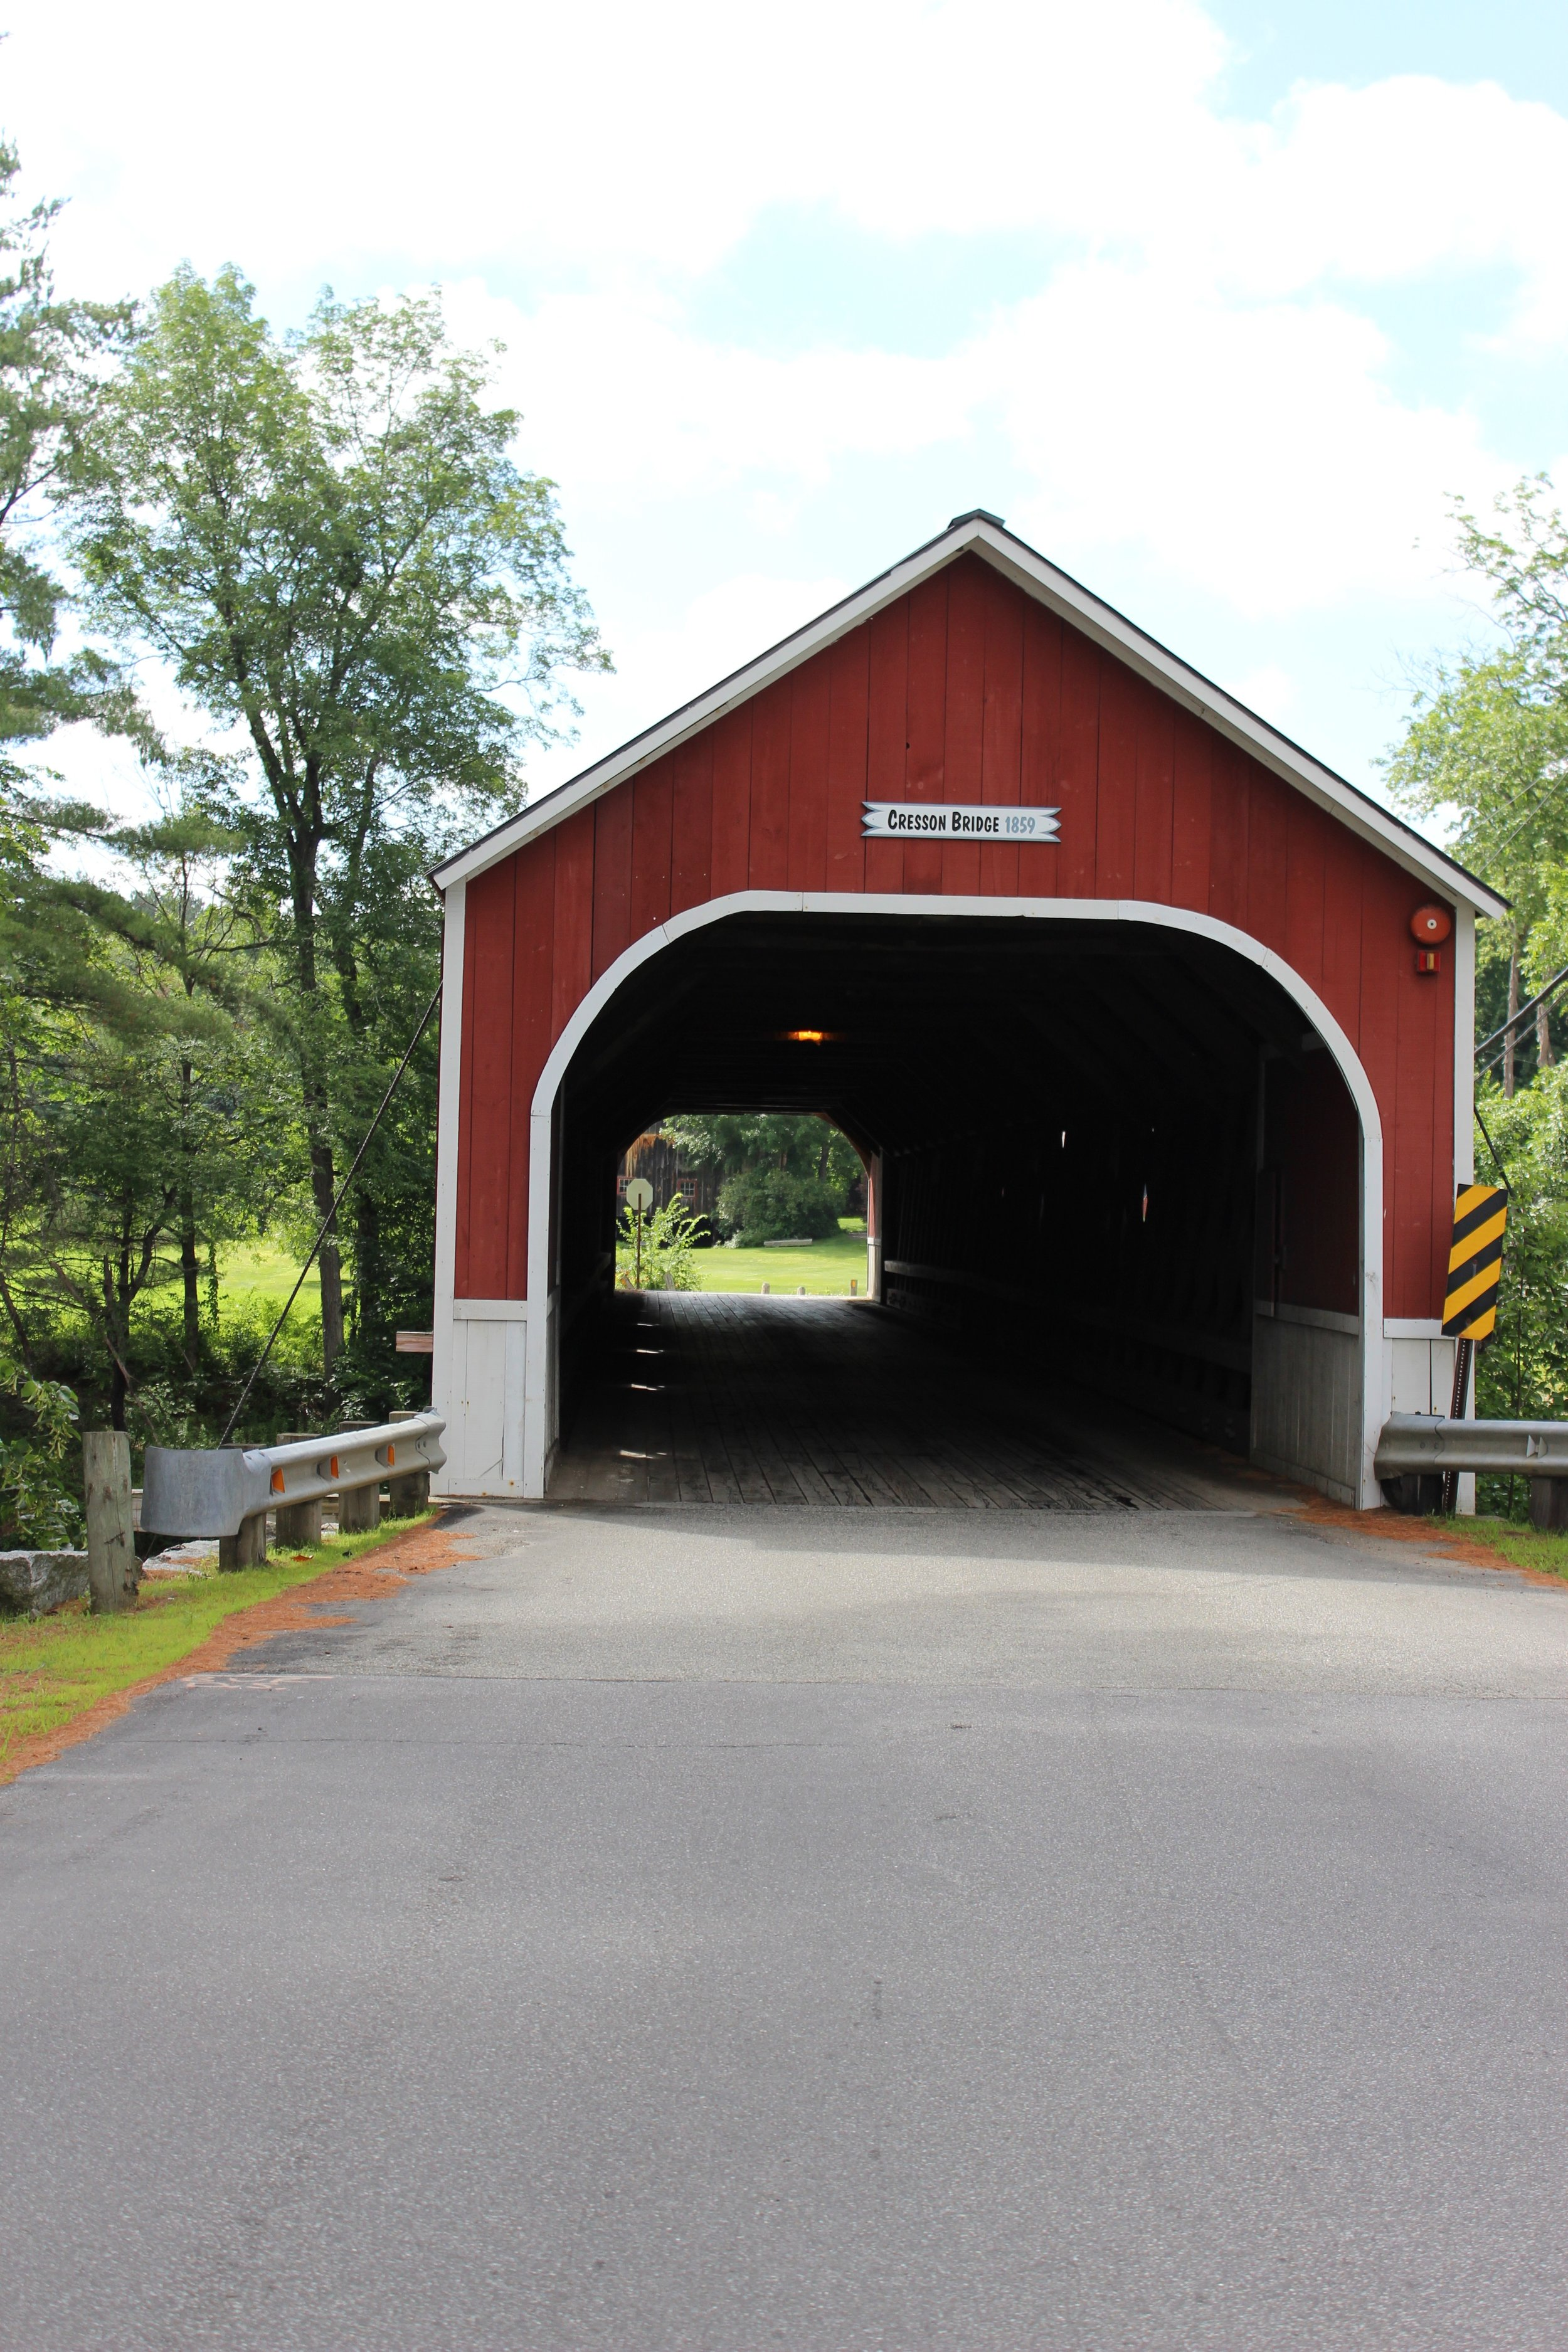 When you come visit check out the covered bridge at the end of our road!